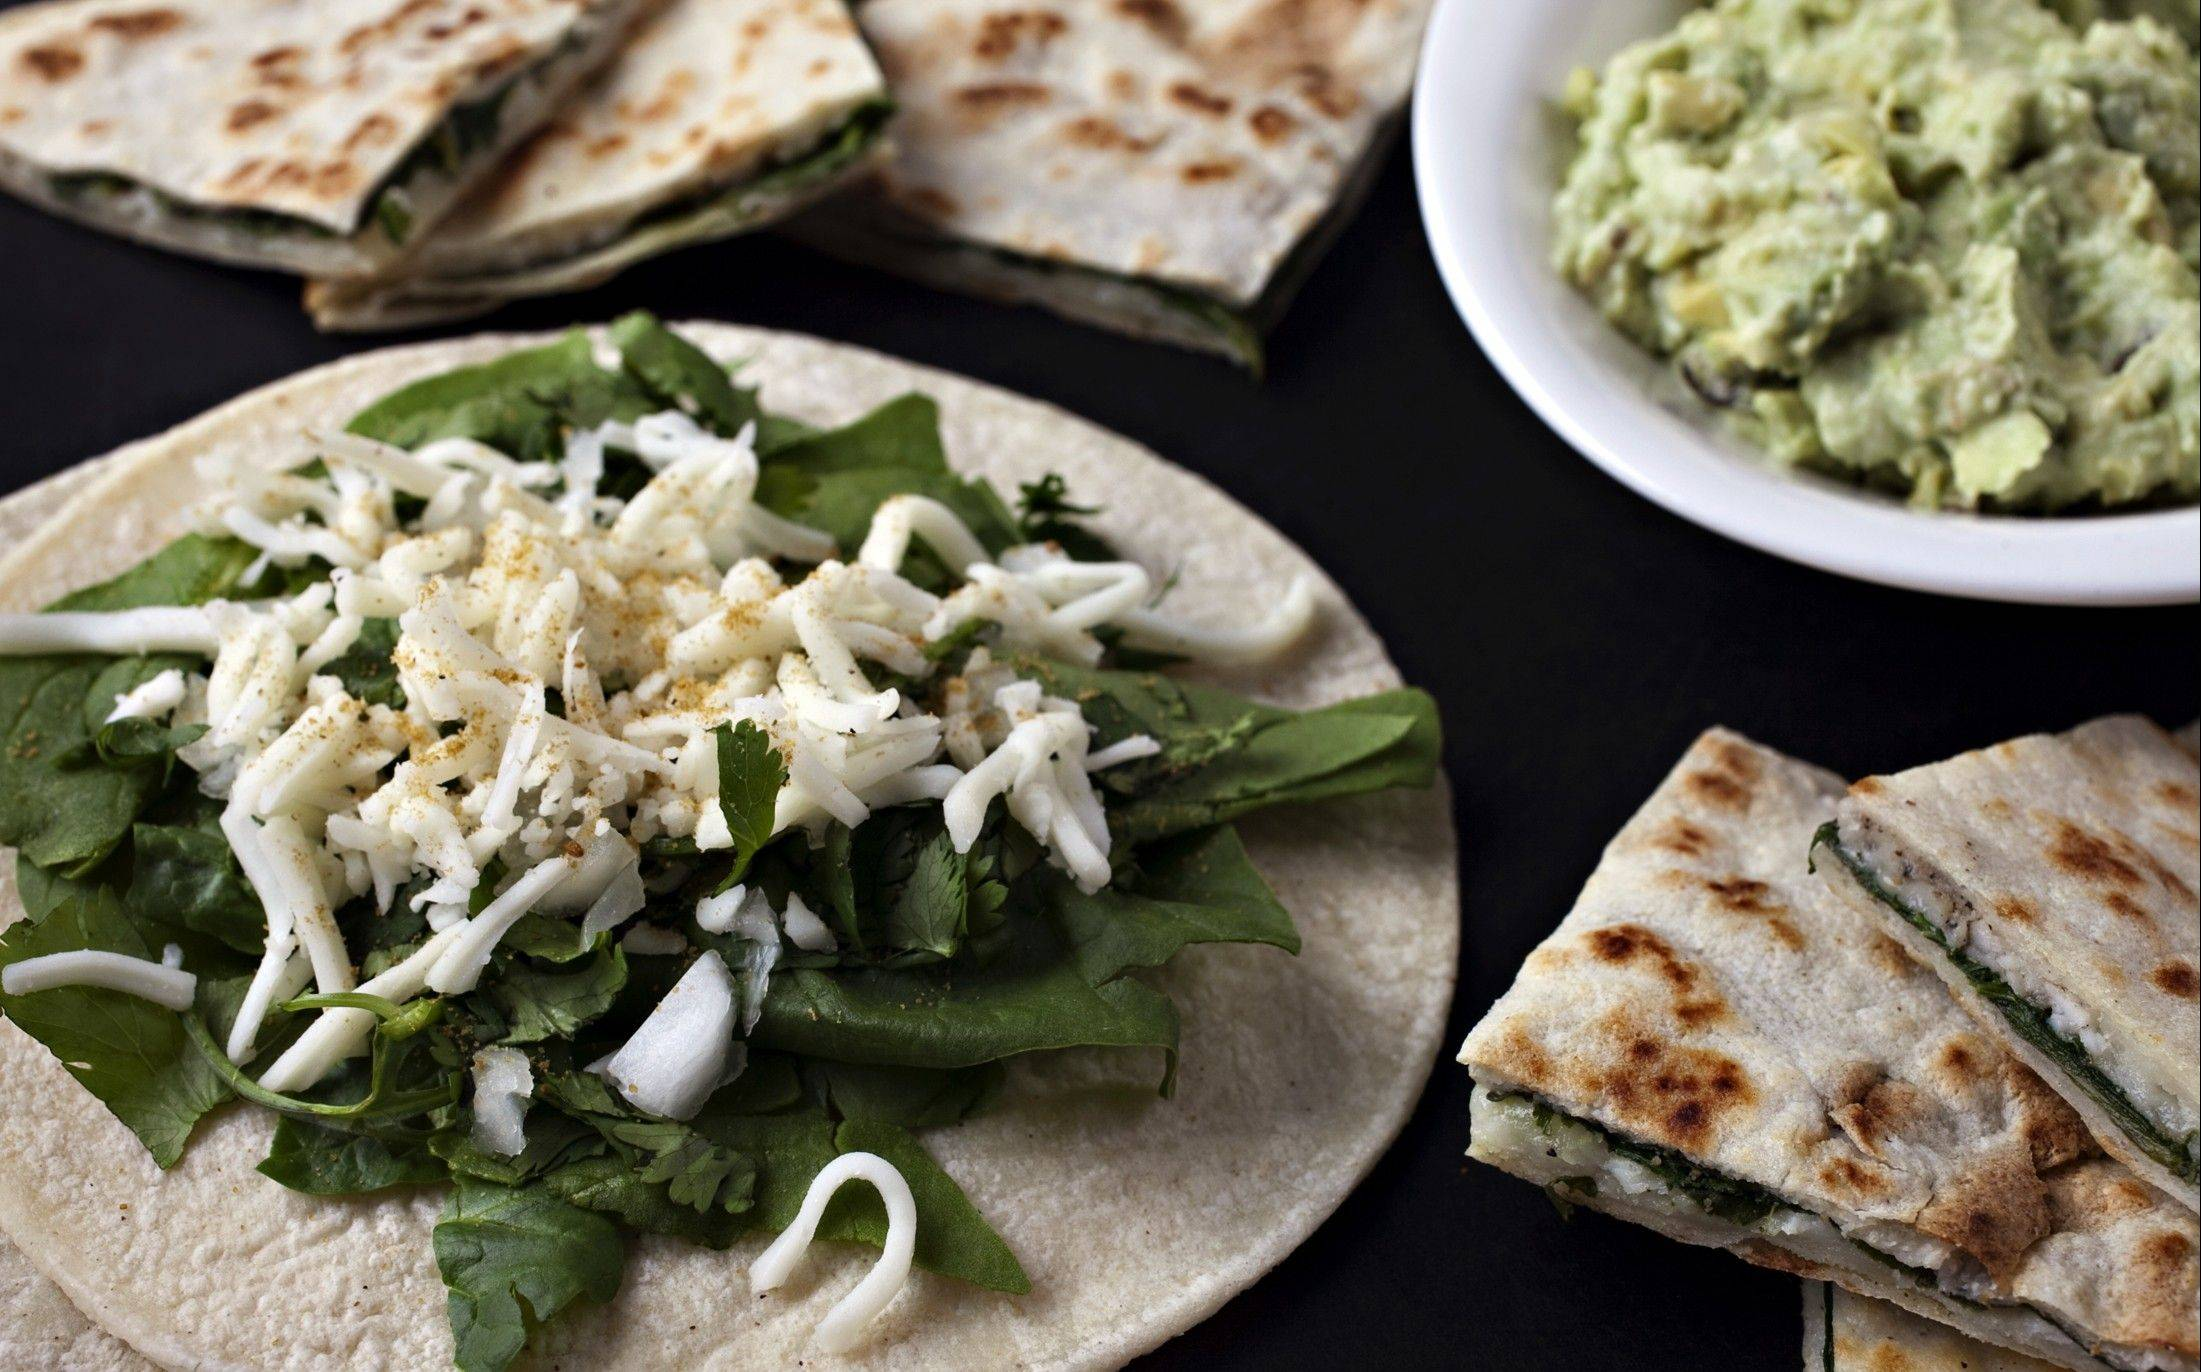 We asked the pros to put MyPlate into practice. One option they came up with is Spinach and Cilantro Quesadillas.